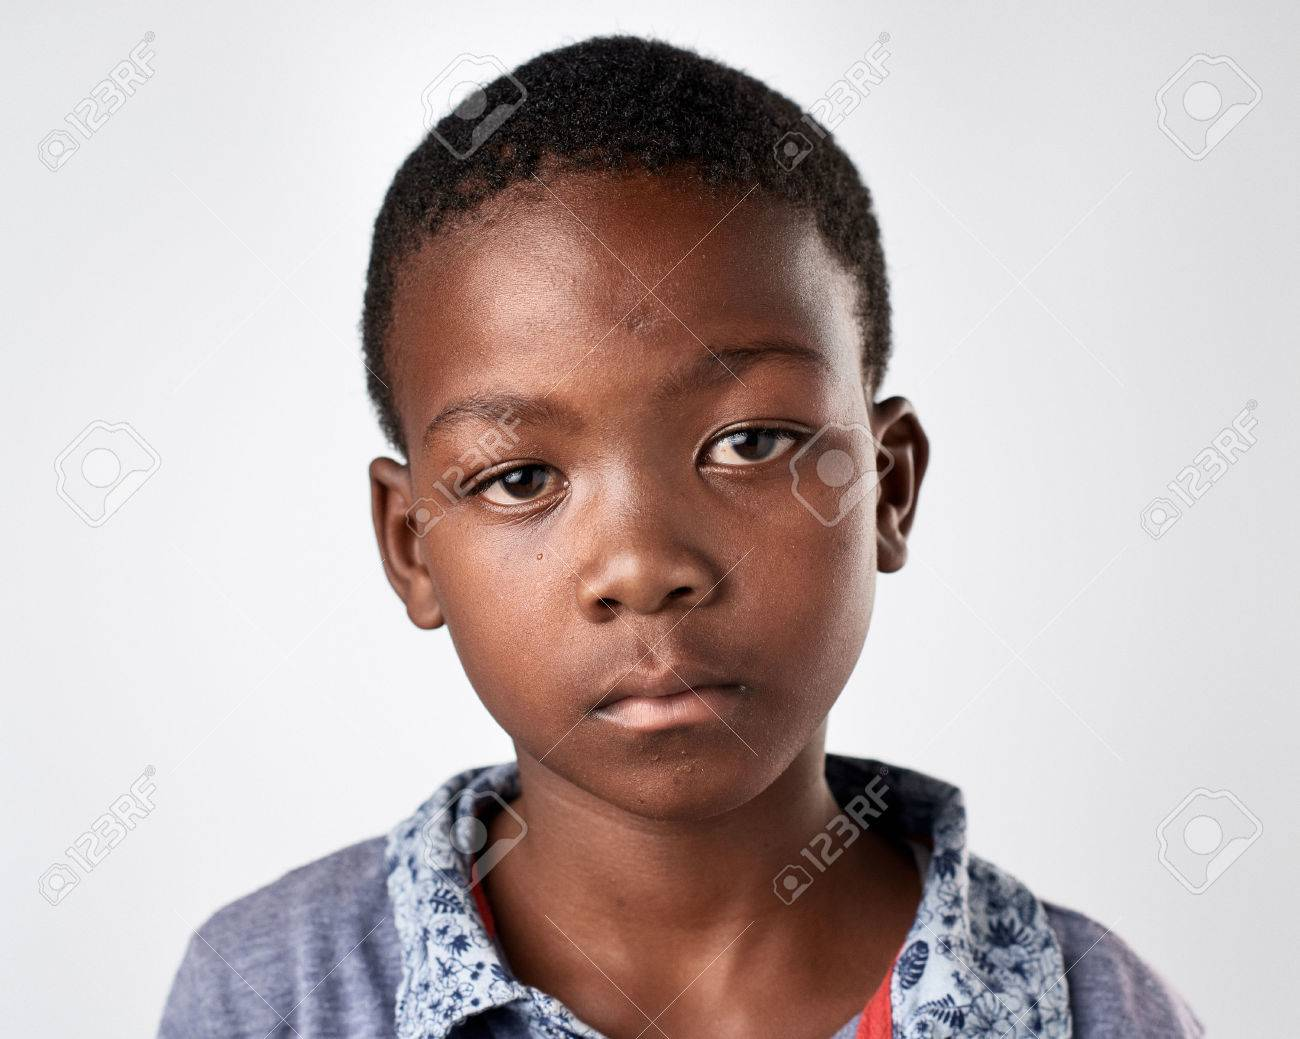 portrait of young african black boy - 65513925